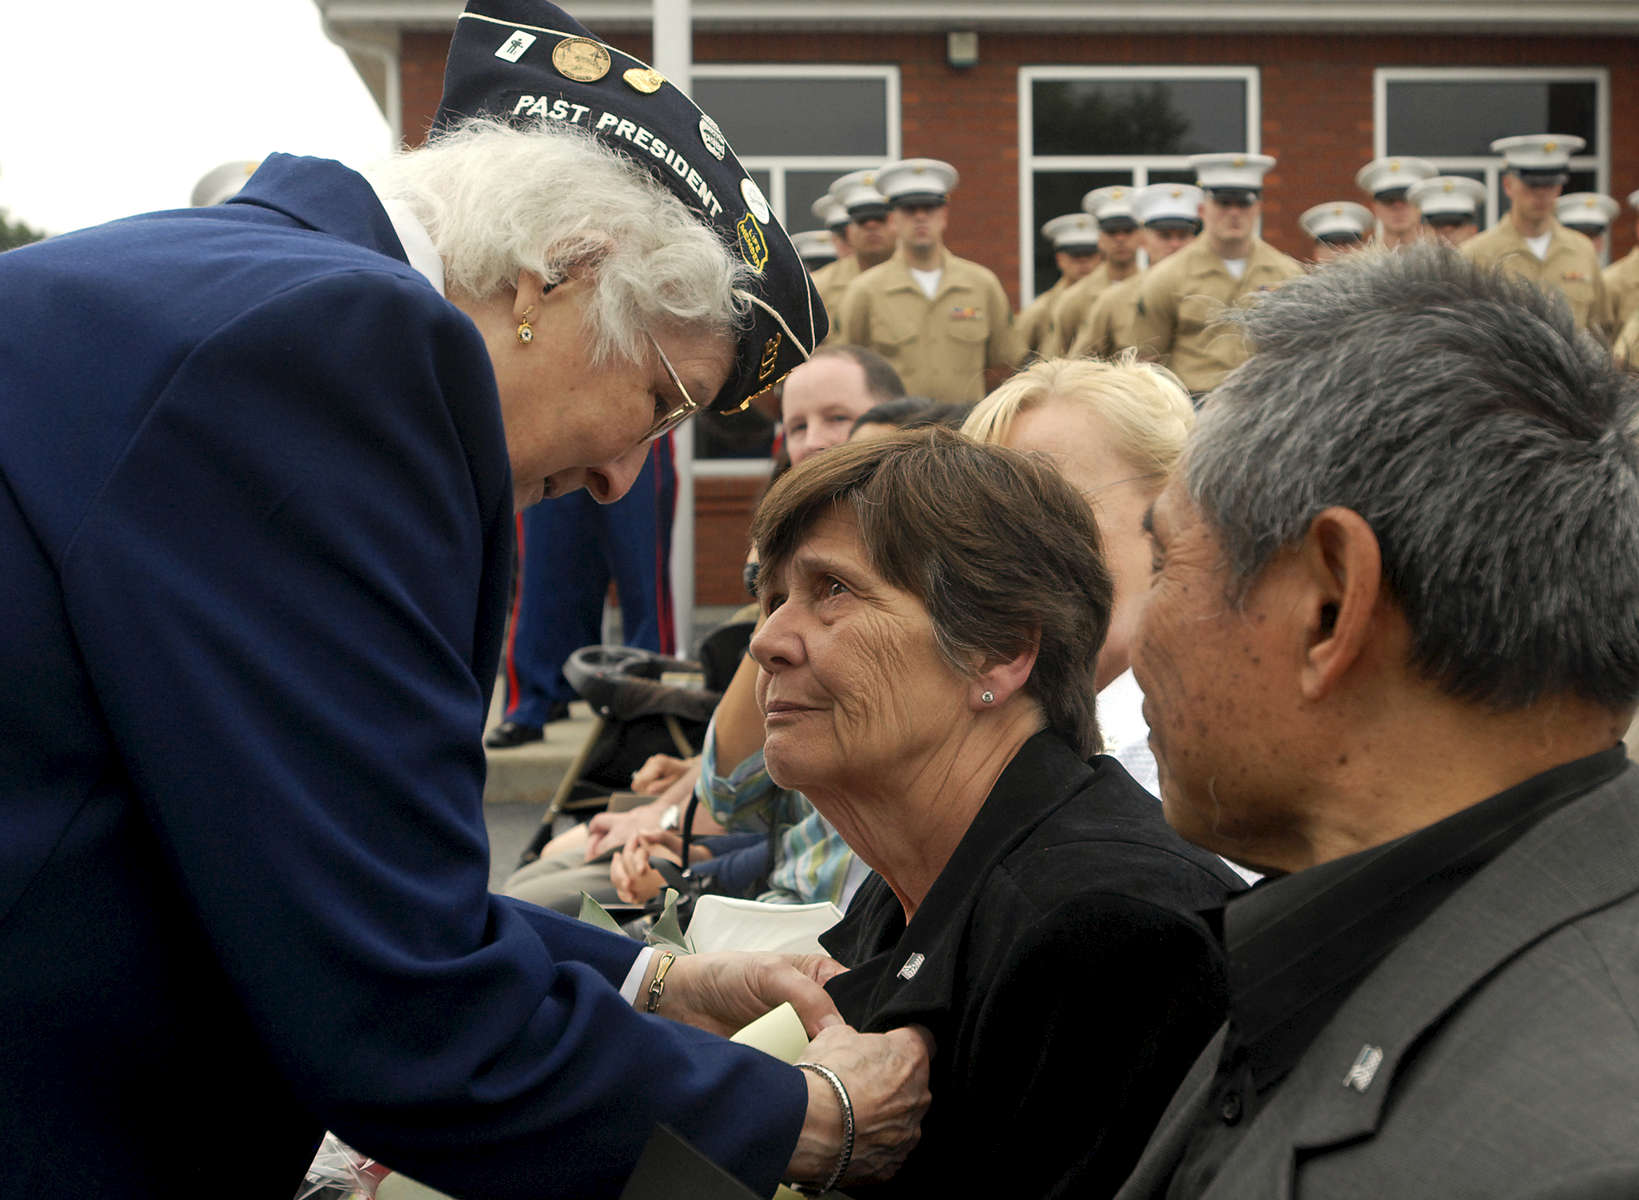 Hilda Levesque of Seekonk presents the Gold Star Mother pin to Anne-Marie Valdepenas, whose son was killed by a roadside bomb in Fallujah in 2006, during a post office dedication ceremony in his honor on Sunday, June 28, 2009. Ms. Levesque's son is currently on his second tour of Iraq and when she pinned Mrs. Valdepenas she said to her: {quote}From one Iraq War veteran's mother to another.{quote}